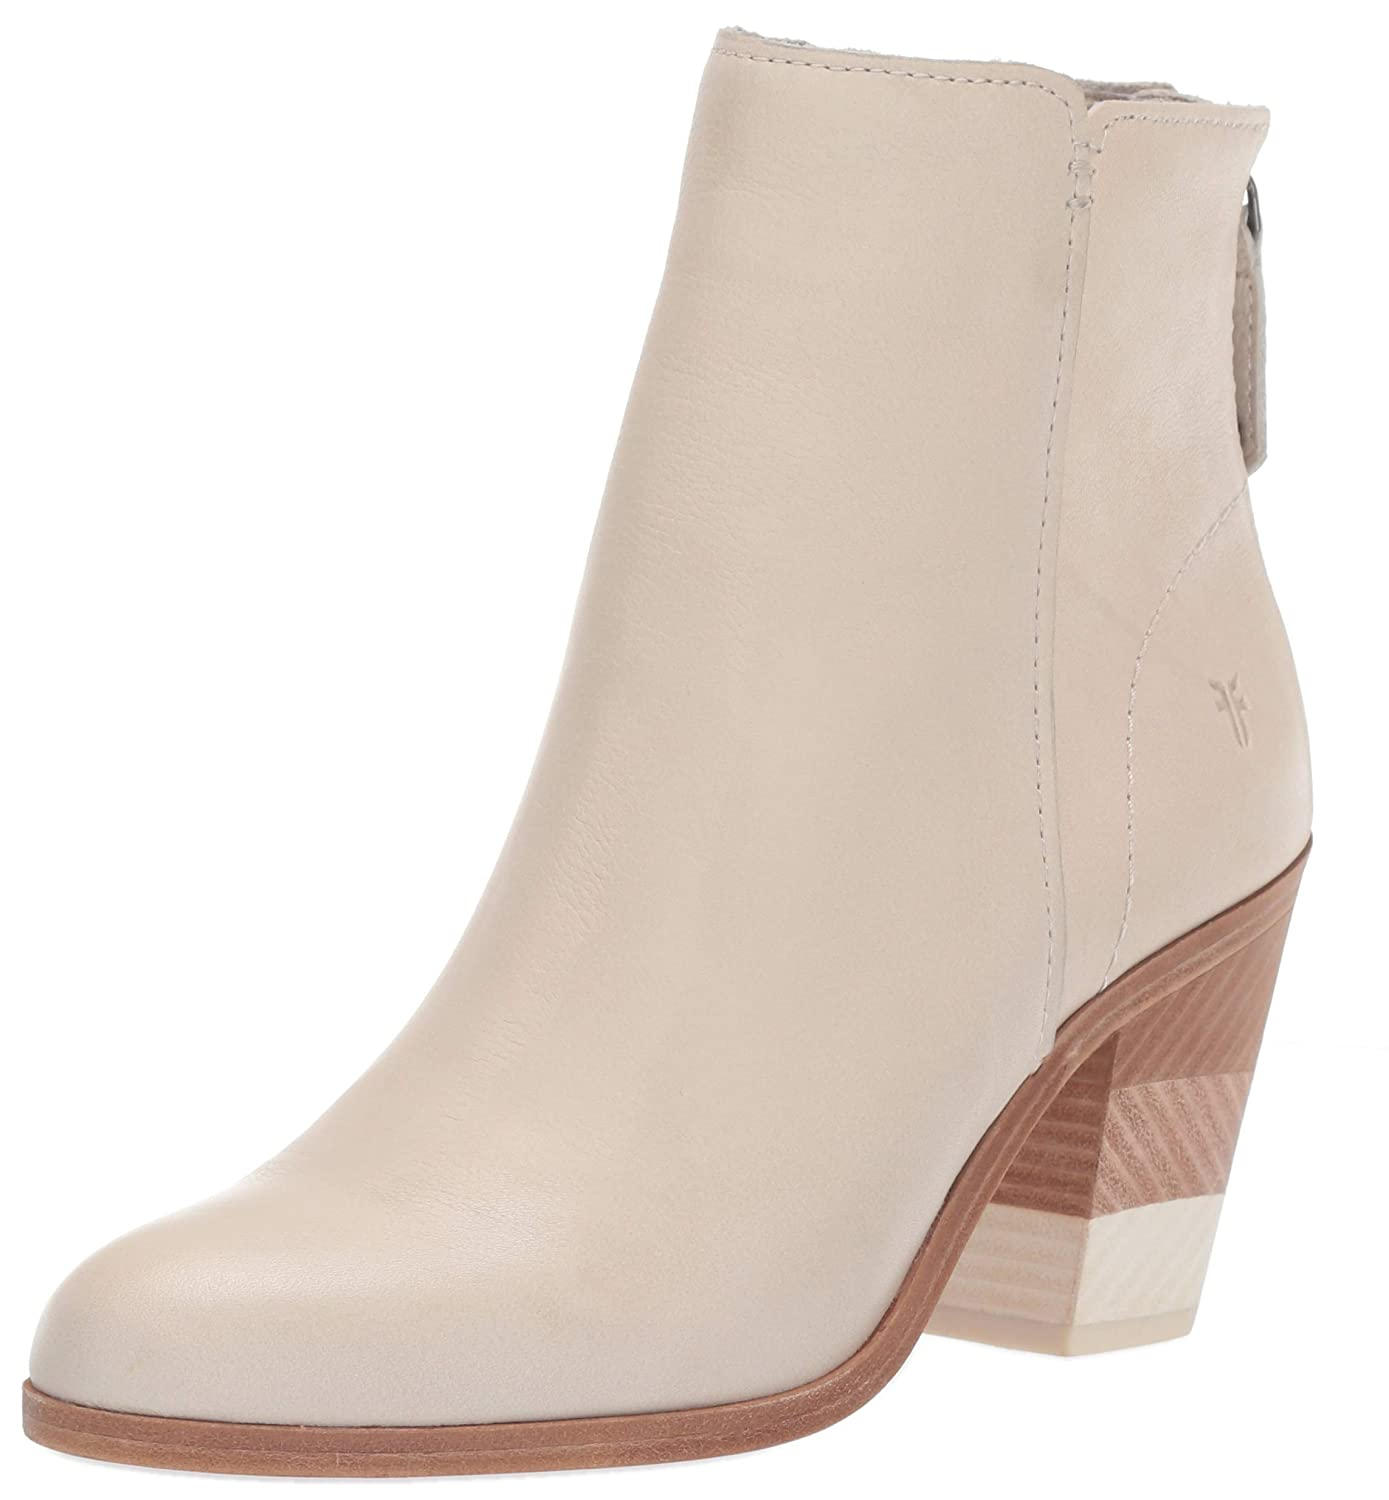 Off White Frye Womens Cameron Bootie Ankle Boot